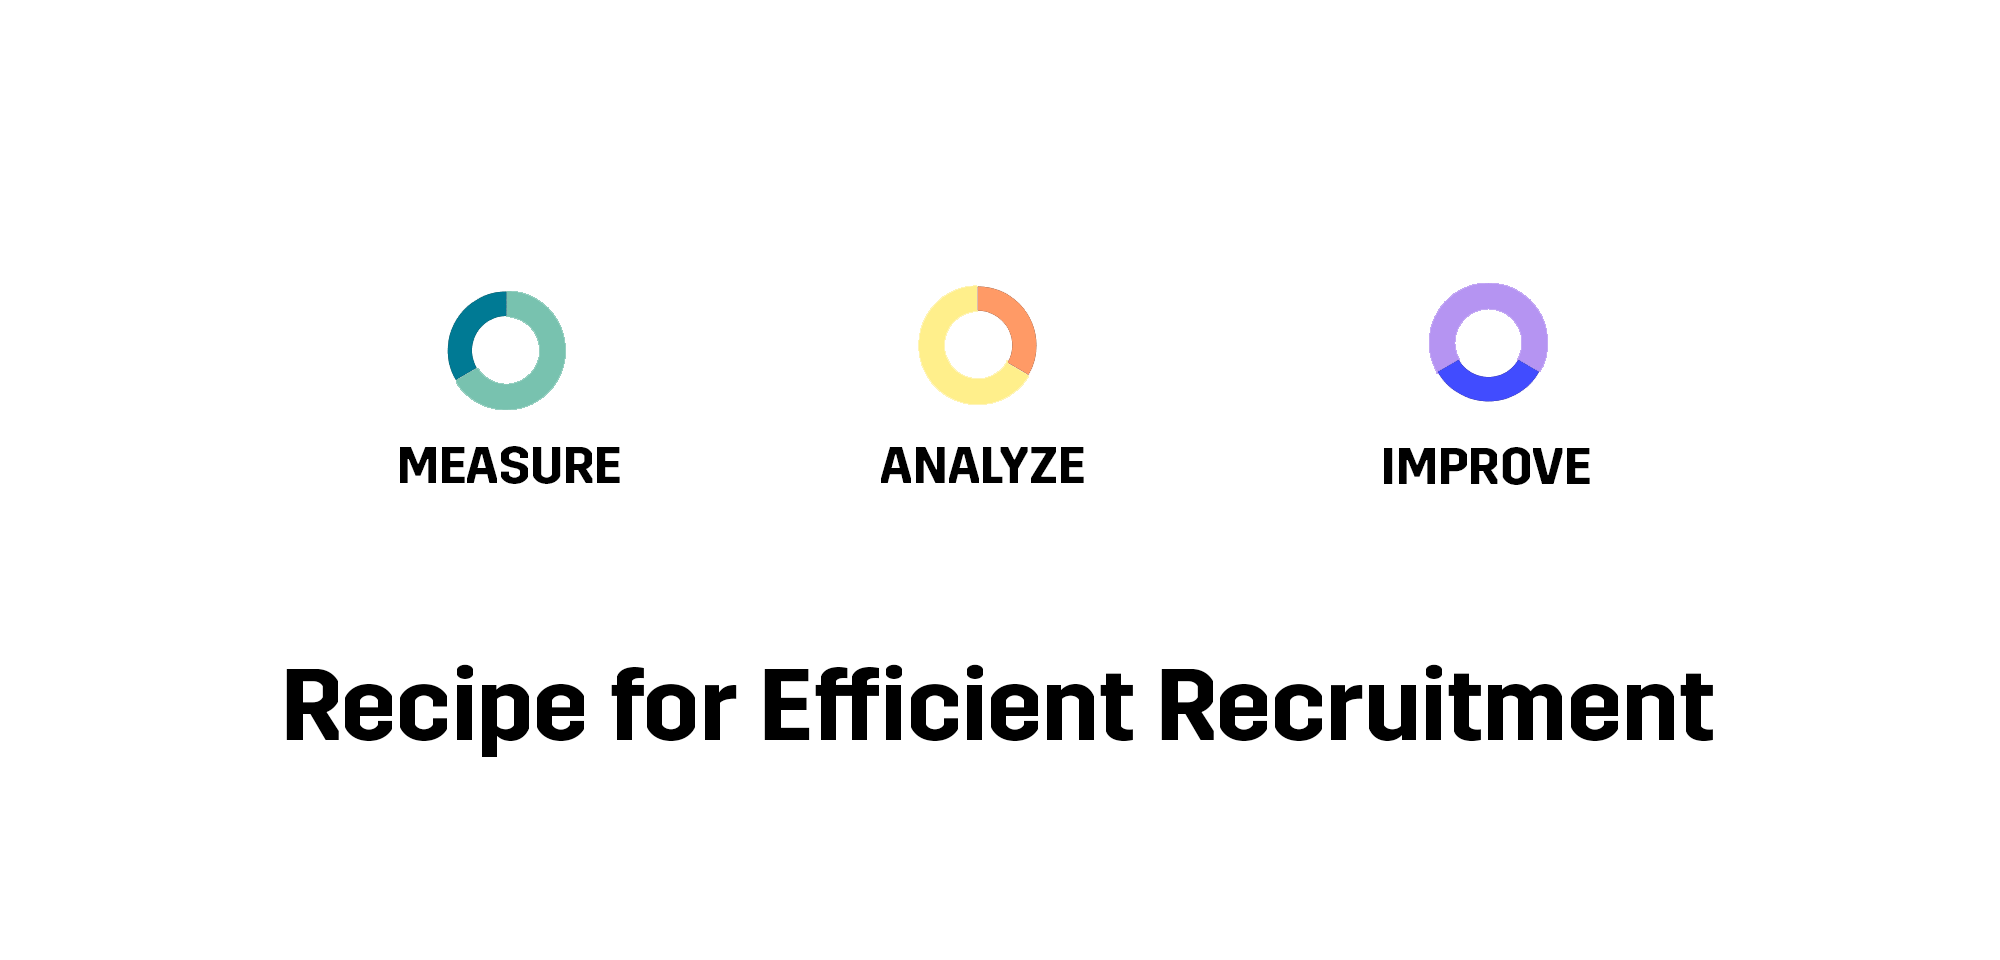 recipe-efficient-recruitment-measure-analyze-improve